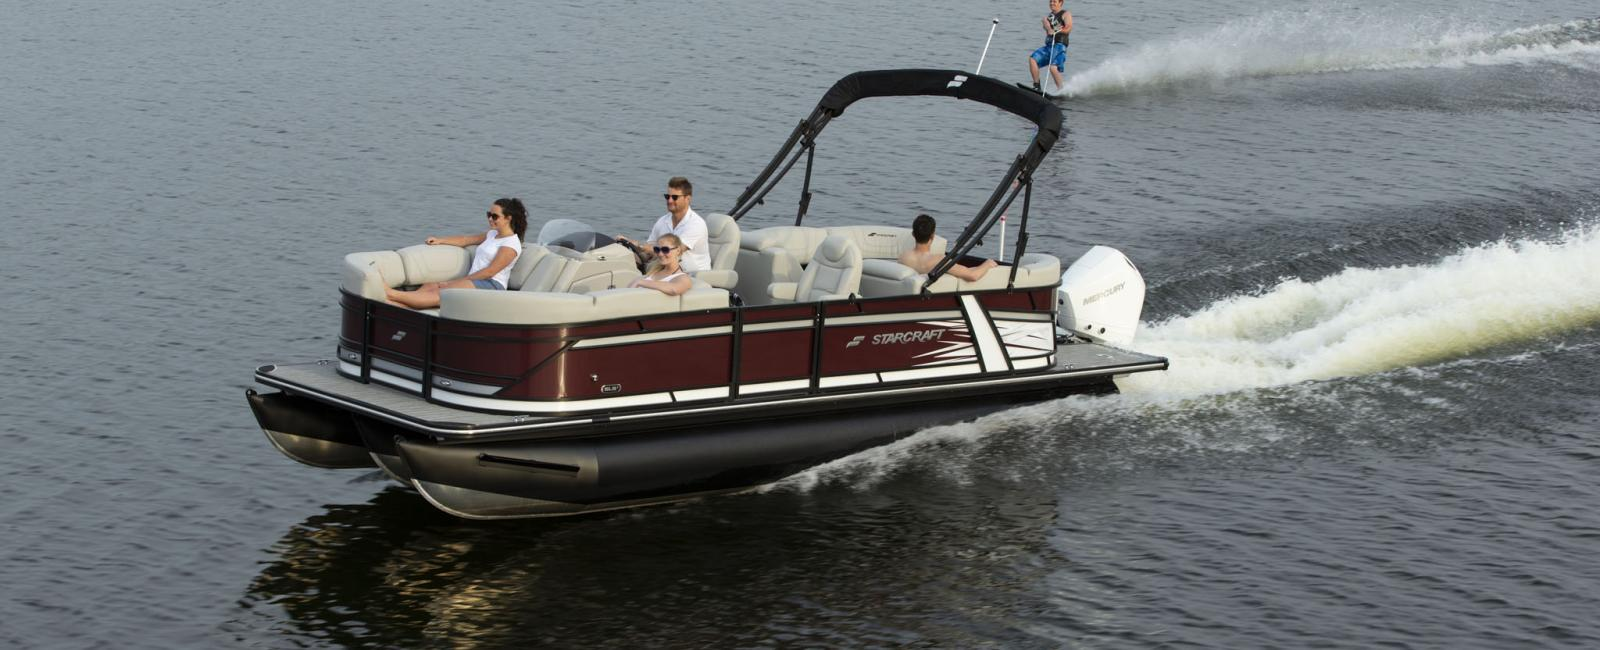 Expensive pontoon boat towing water skier